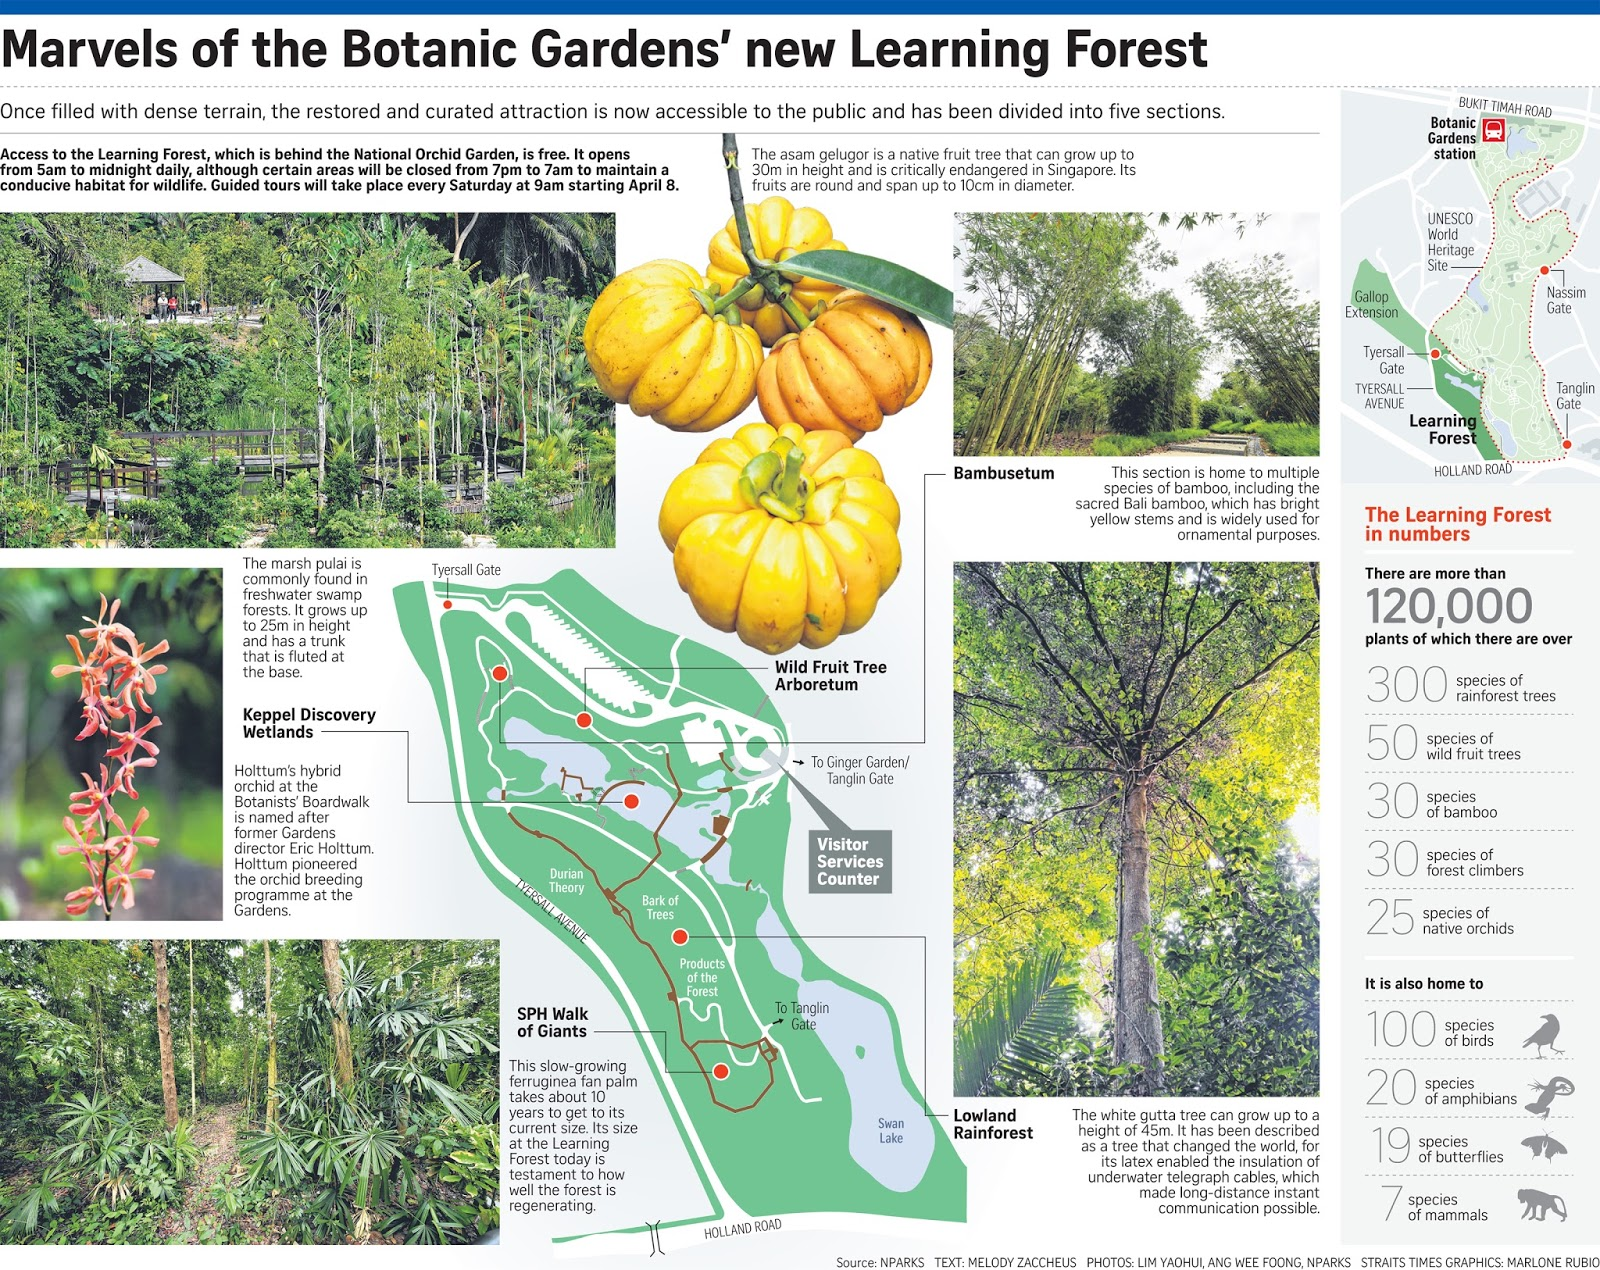 For More Than 100 Years, A Wild Swampy Forest With Towering Trees Grew  Right Next To The Botanic Gardens. Few Ventured Into The Dense Marsh.